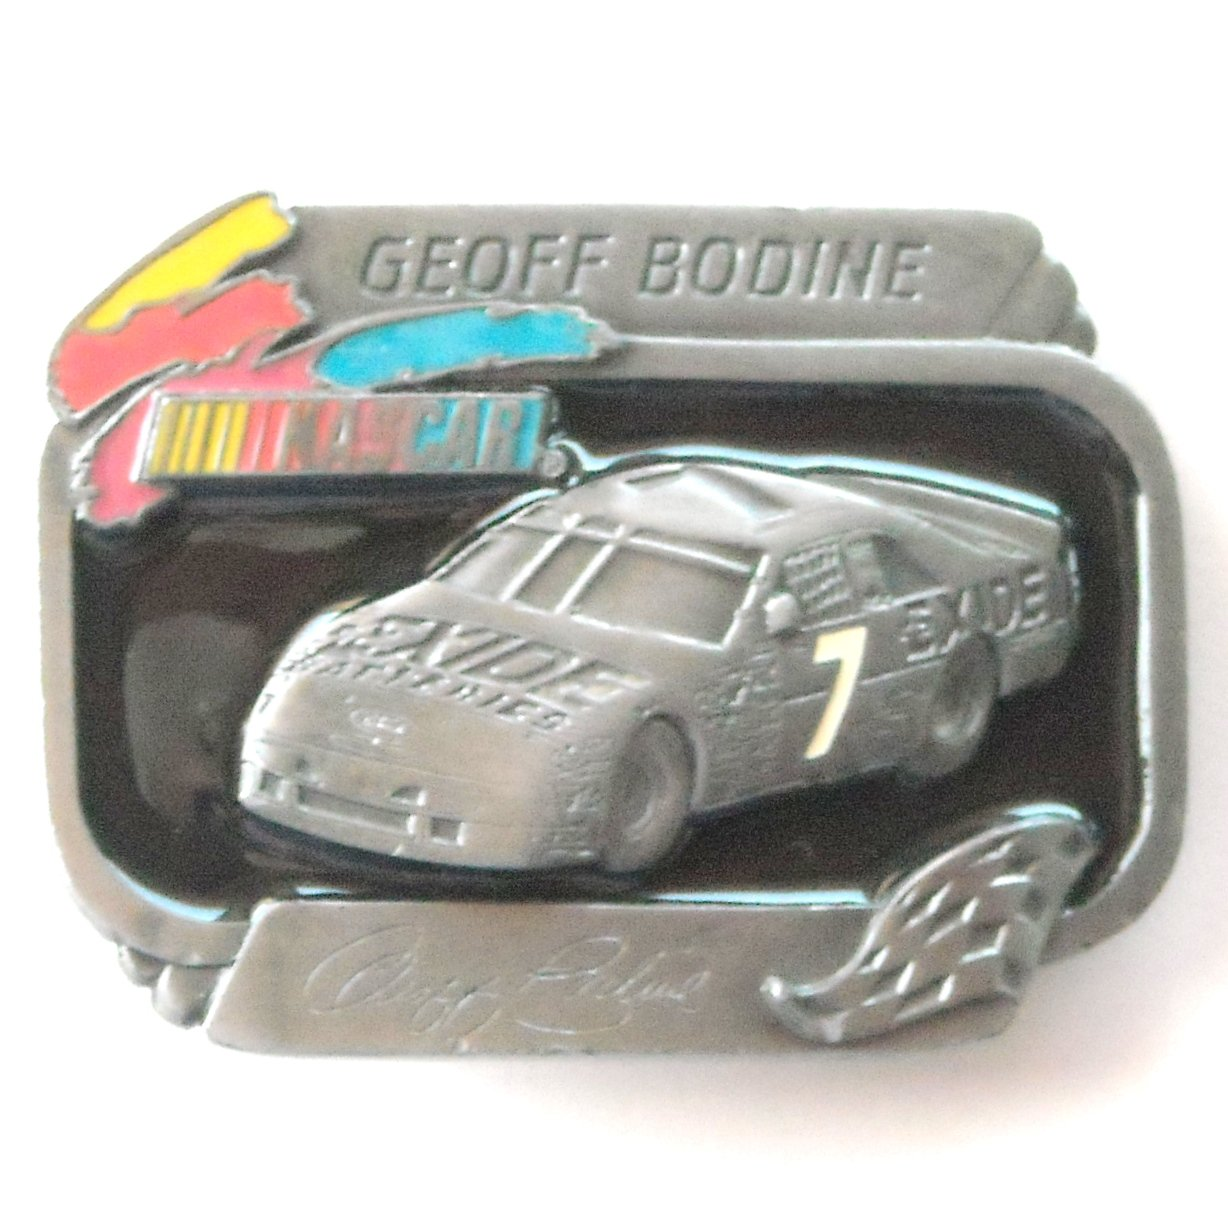 American Legends Geoff Bodine Nascar Exide 7 Limited Edition 511 Belt Buckle